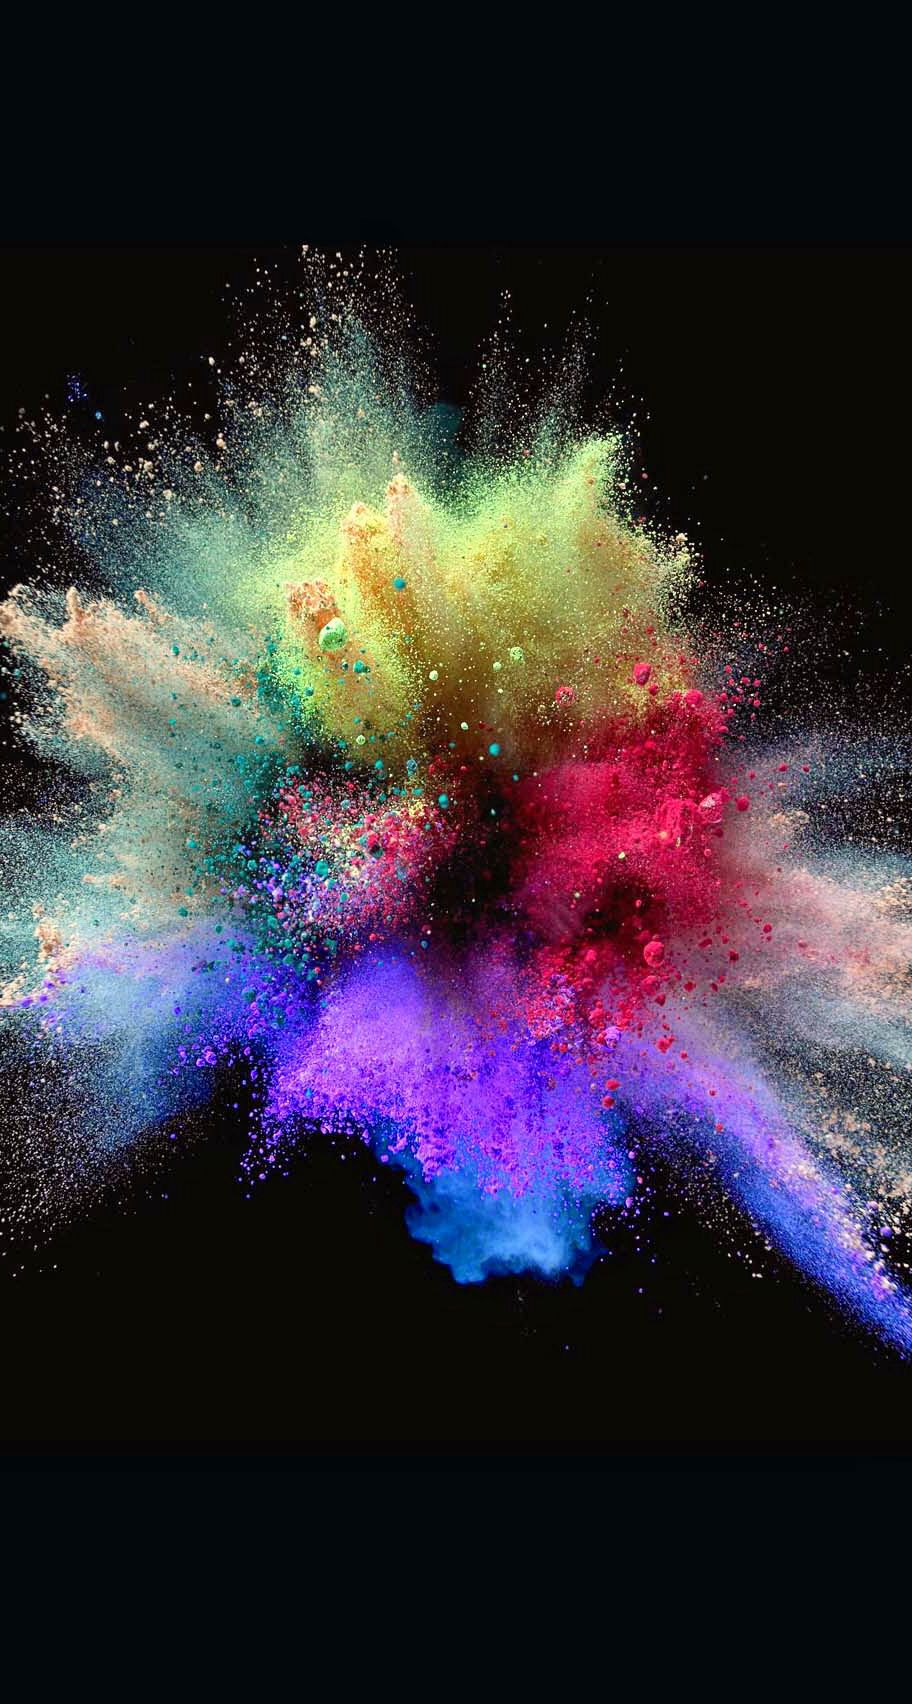 Chalk Explosion Art Background hd wallpaper Tumblr wallpaper 912x1704